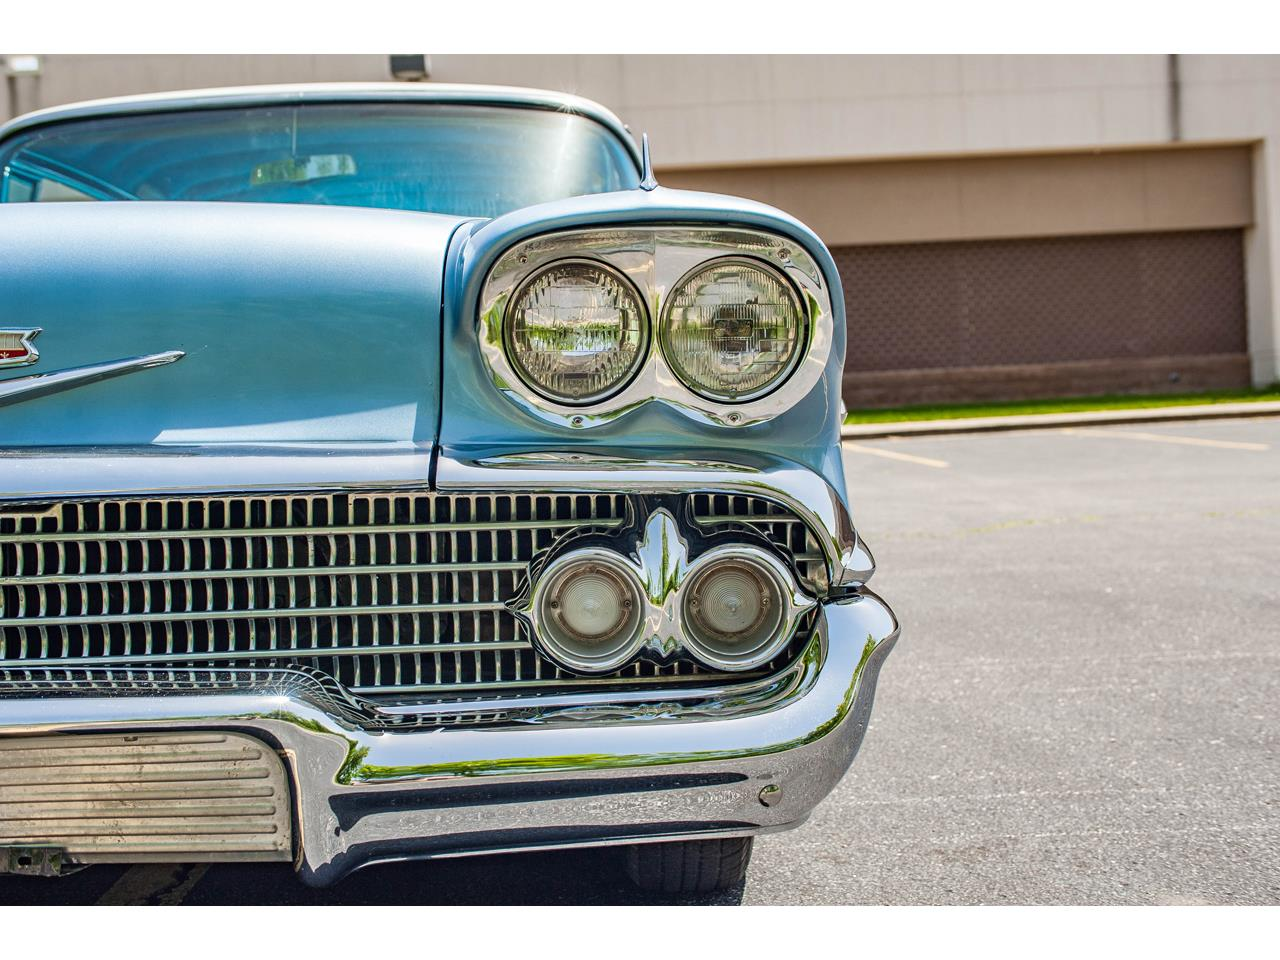 Large Picture of Classic '58 Impala located in Illinois - $62,000.00 Offered by Gateway Classic Cars - St. Louis - QB9Q